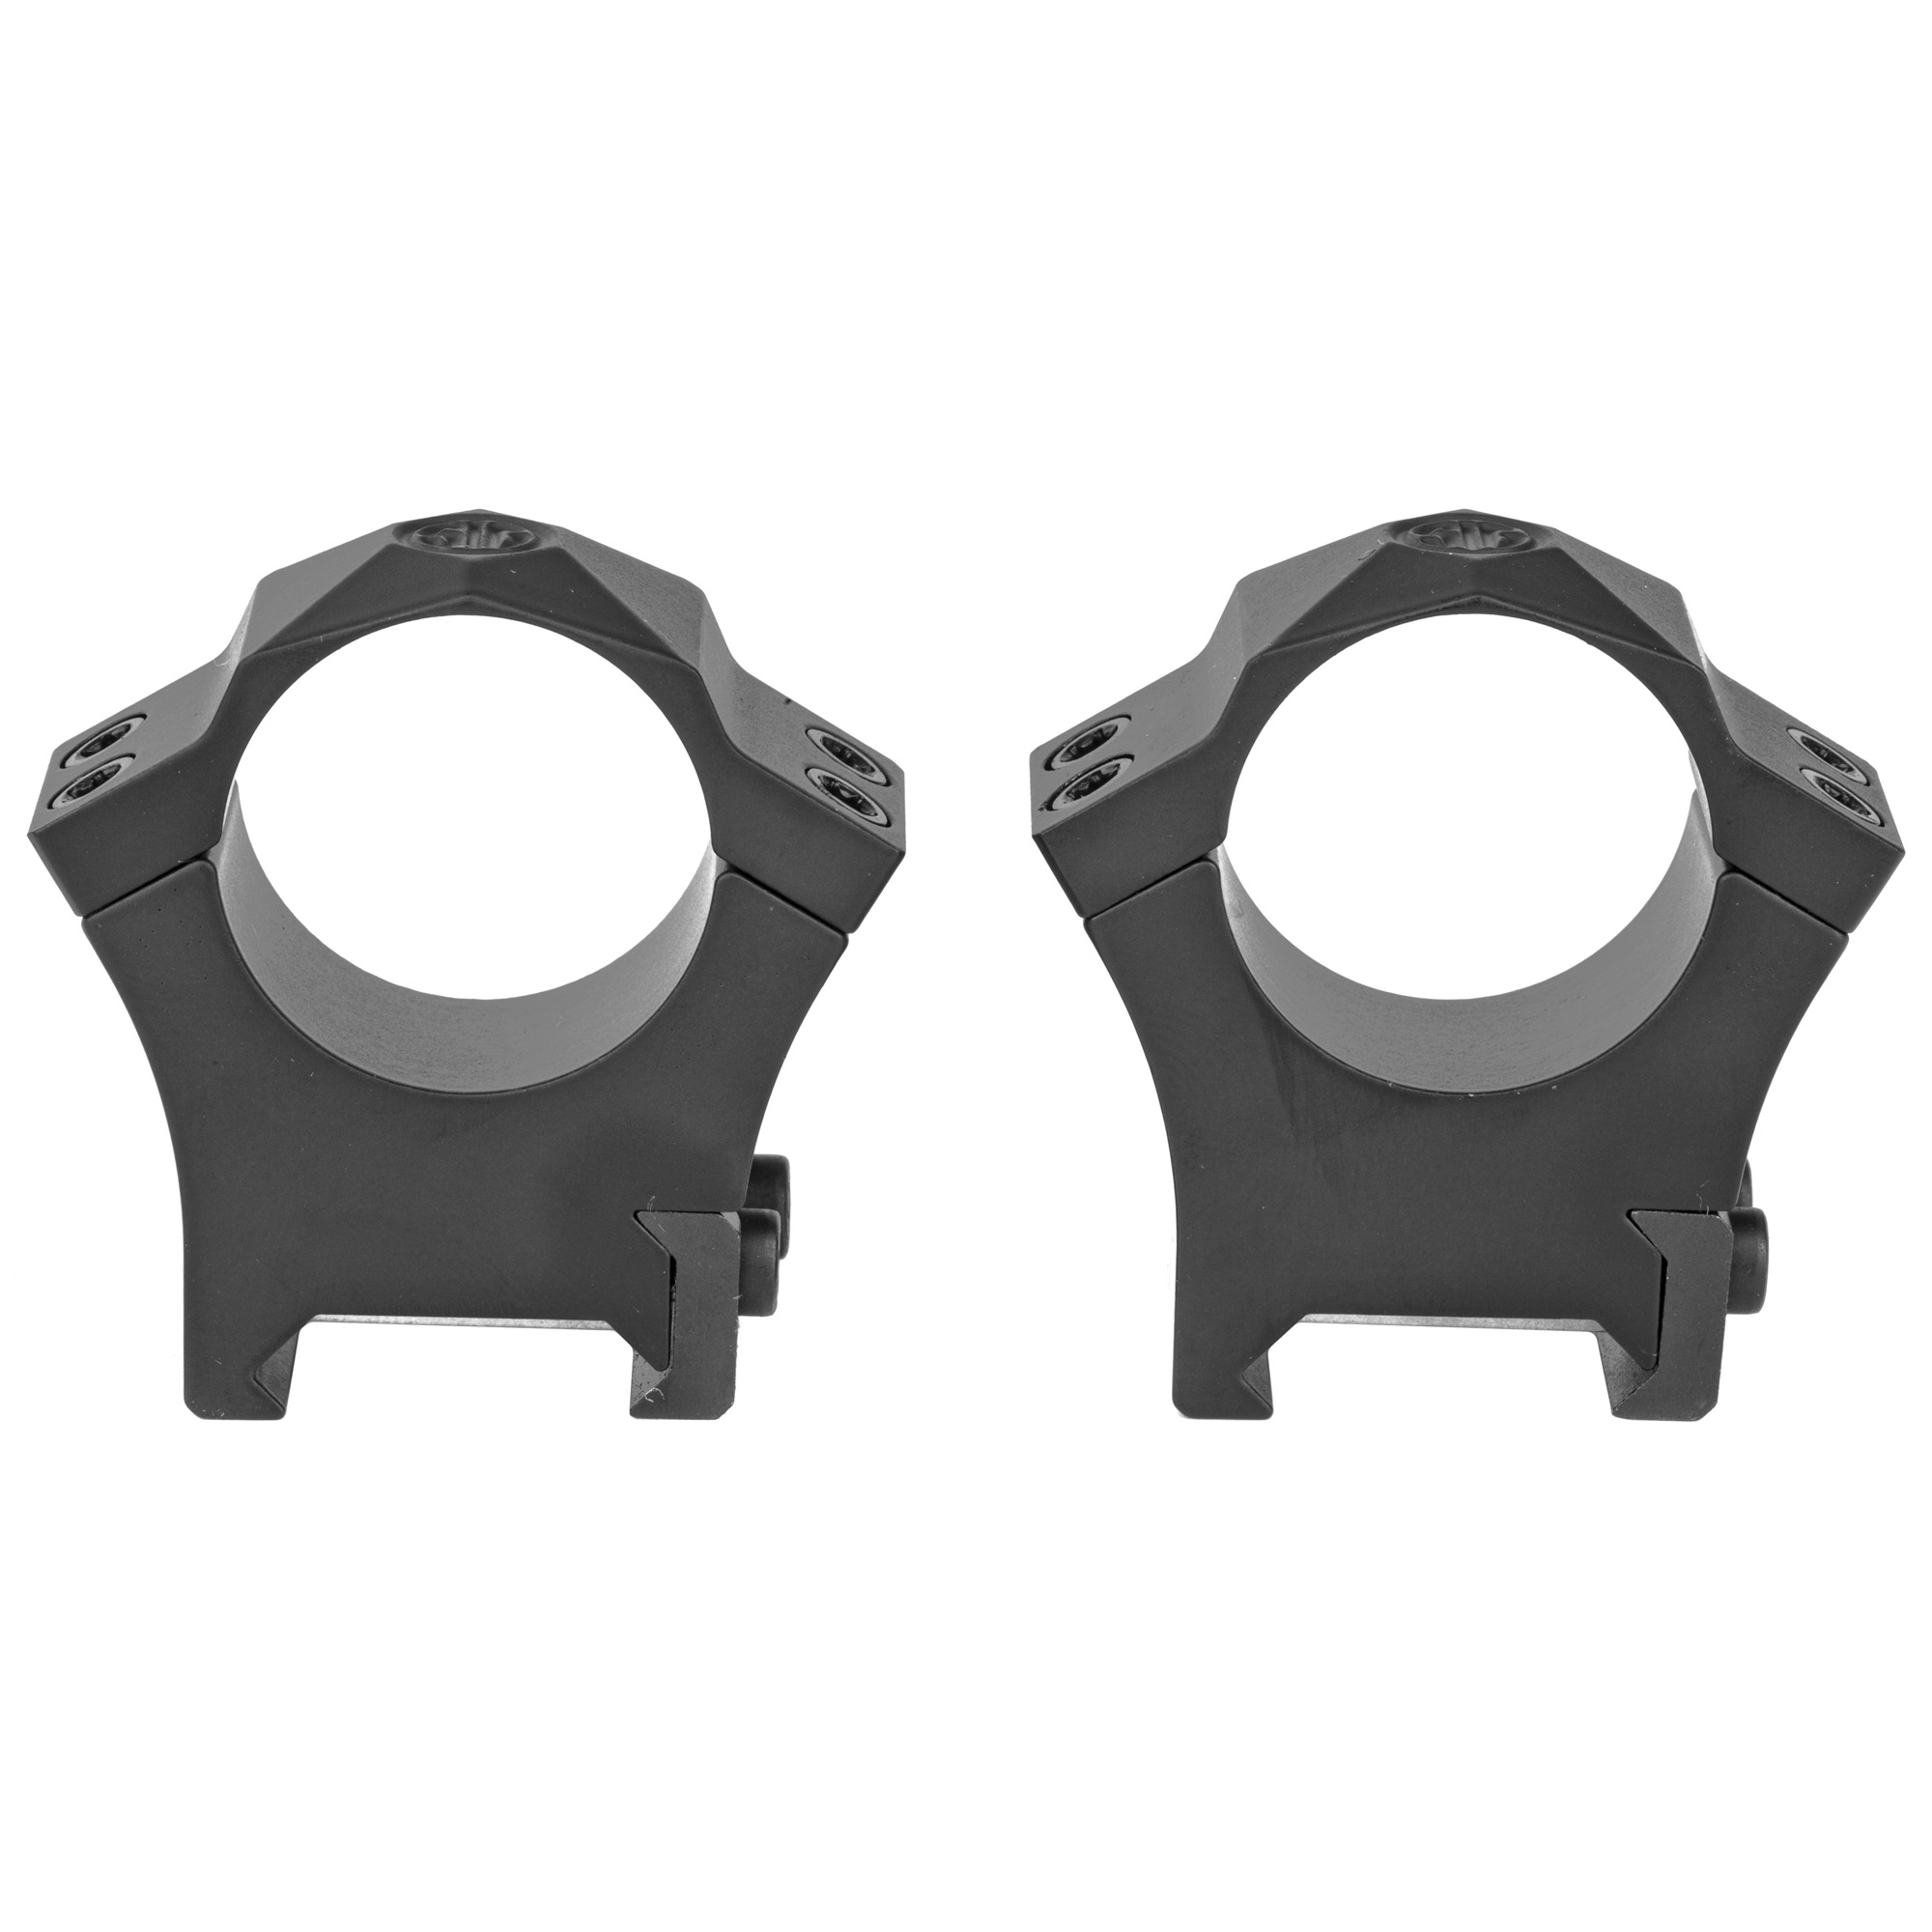 "Sig's proprietary steel alloy ALPHA Hunting Rings are machined with an exactness that is both strong yet ductile that allows their rings to form around a riflescope"" yet will not damage scope under proper installation. The steel rings are epoxy powder coated to prevent oxidation and resist gun oils"" cleaning solutions"" and outdoor exposure."